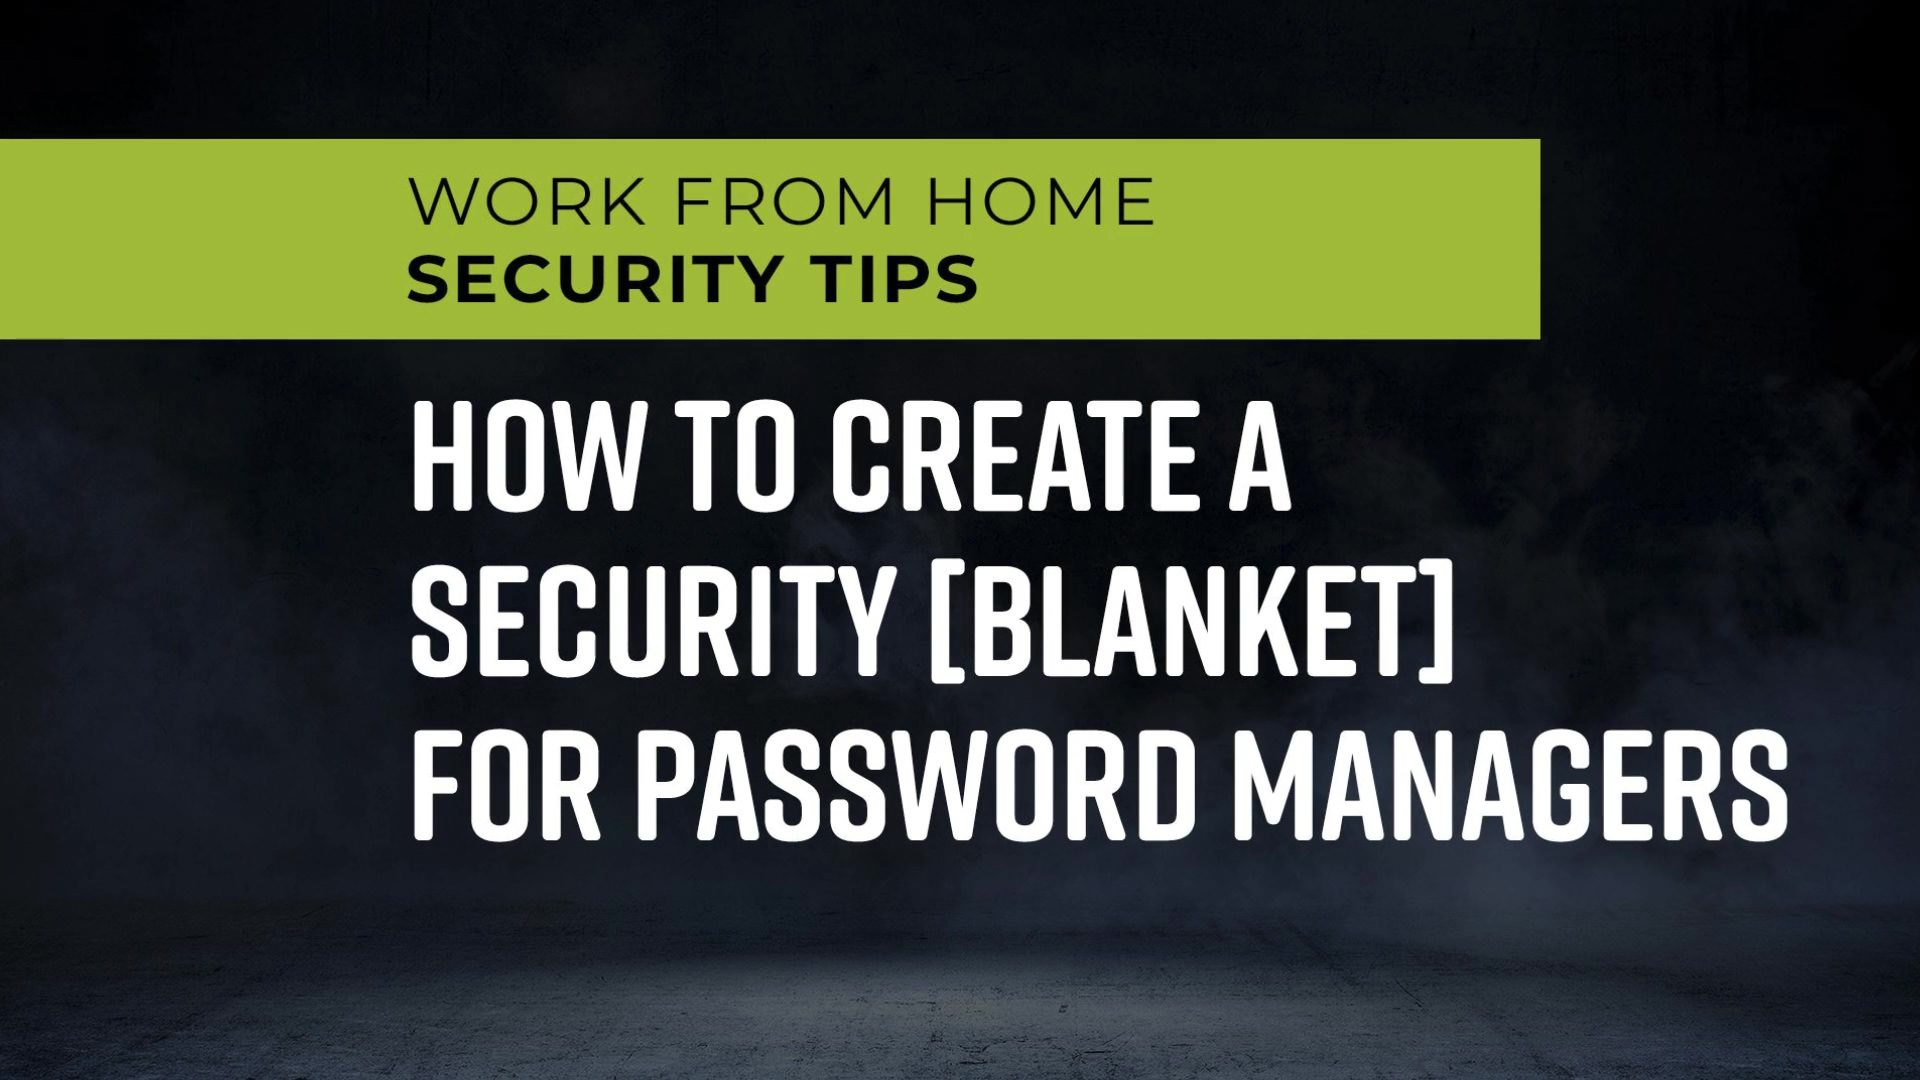 Work_From_Home_Security_Tips_-_How_to_Create_a_Security_Blanket_for_Password_Managers_1080p